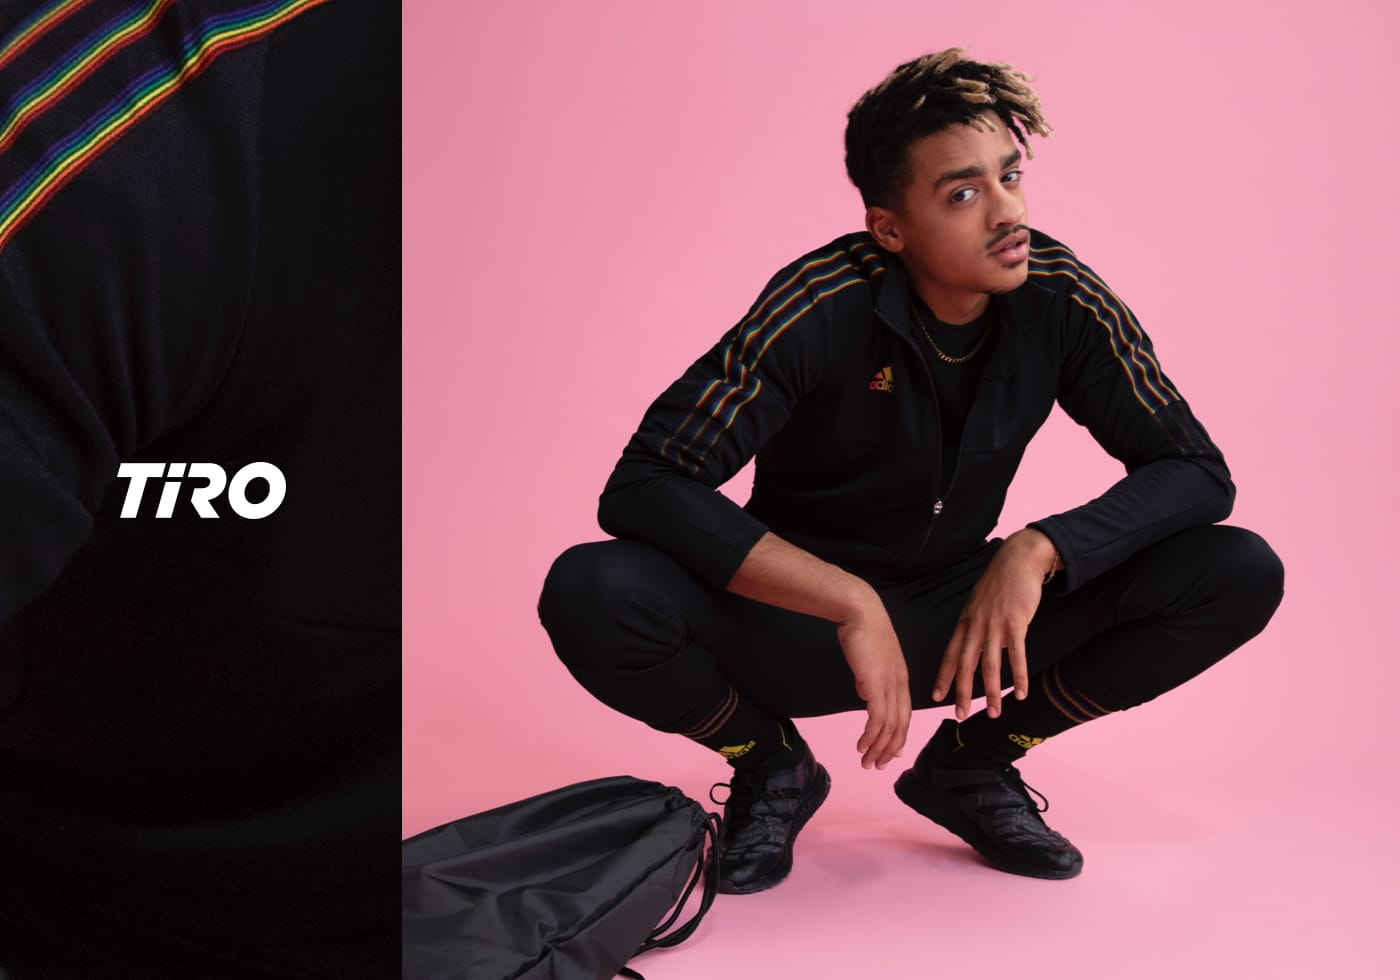 Man wearing the key outfit from the TIRO 21 Pride Pack from adidas. Spring/Summer 21.